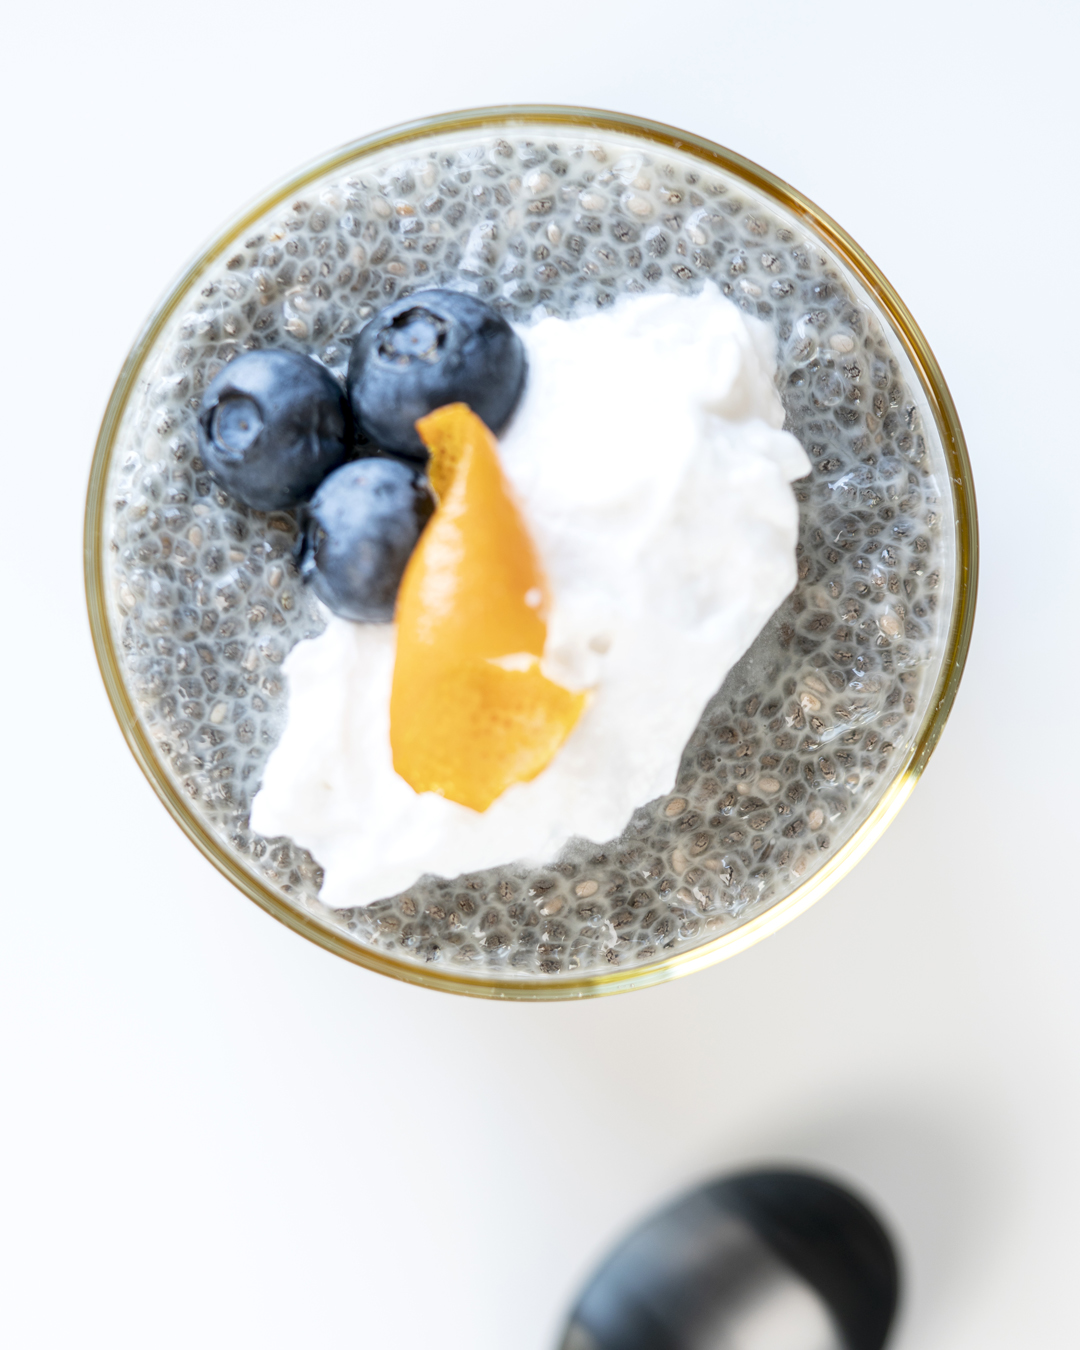 Knotably Creative House Chia Seed Pudding Recipe 019.jpg